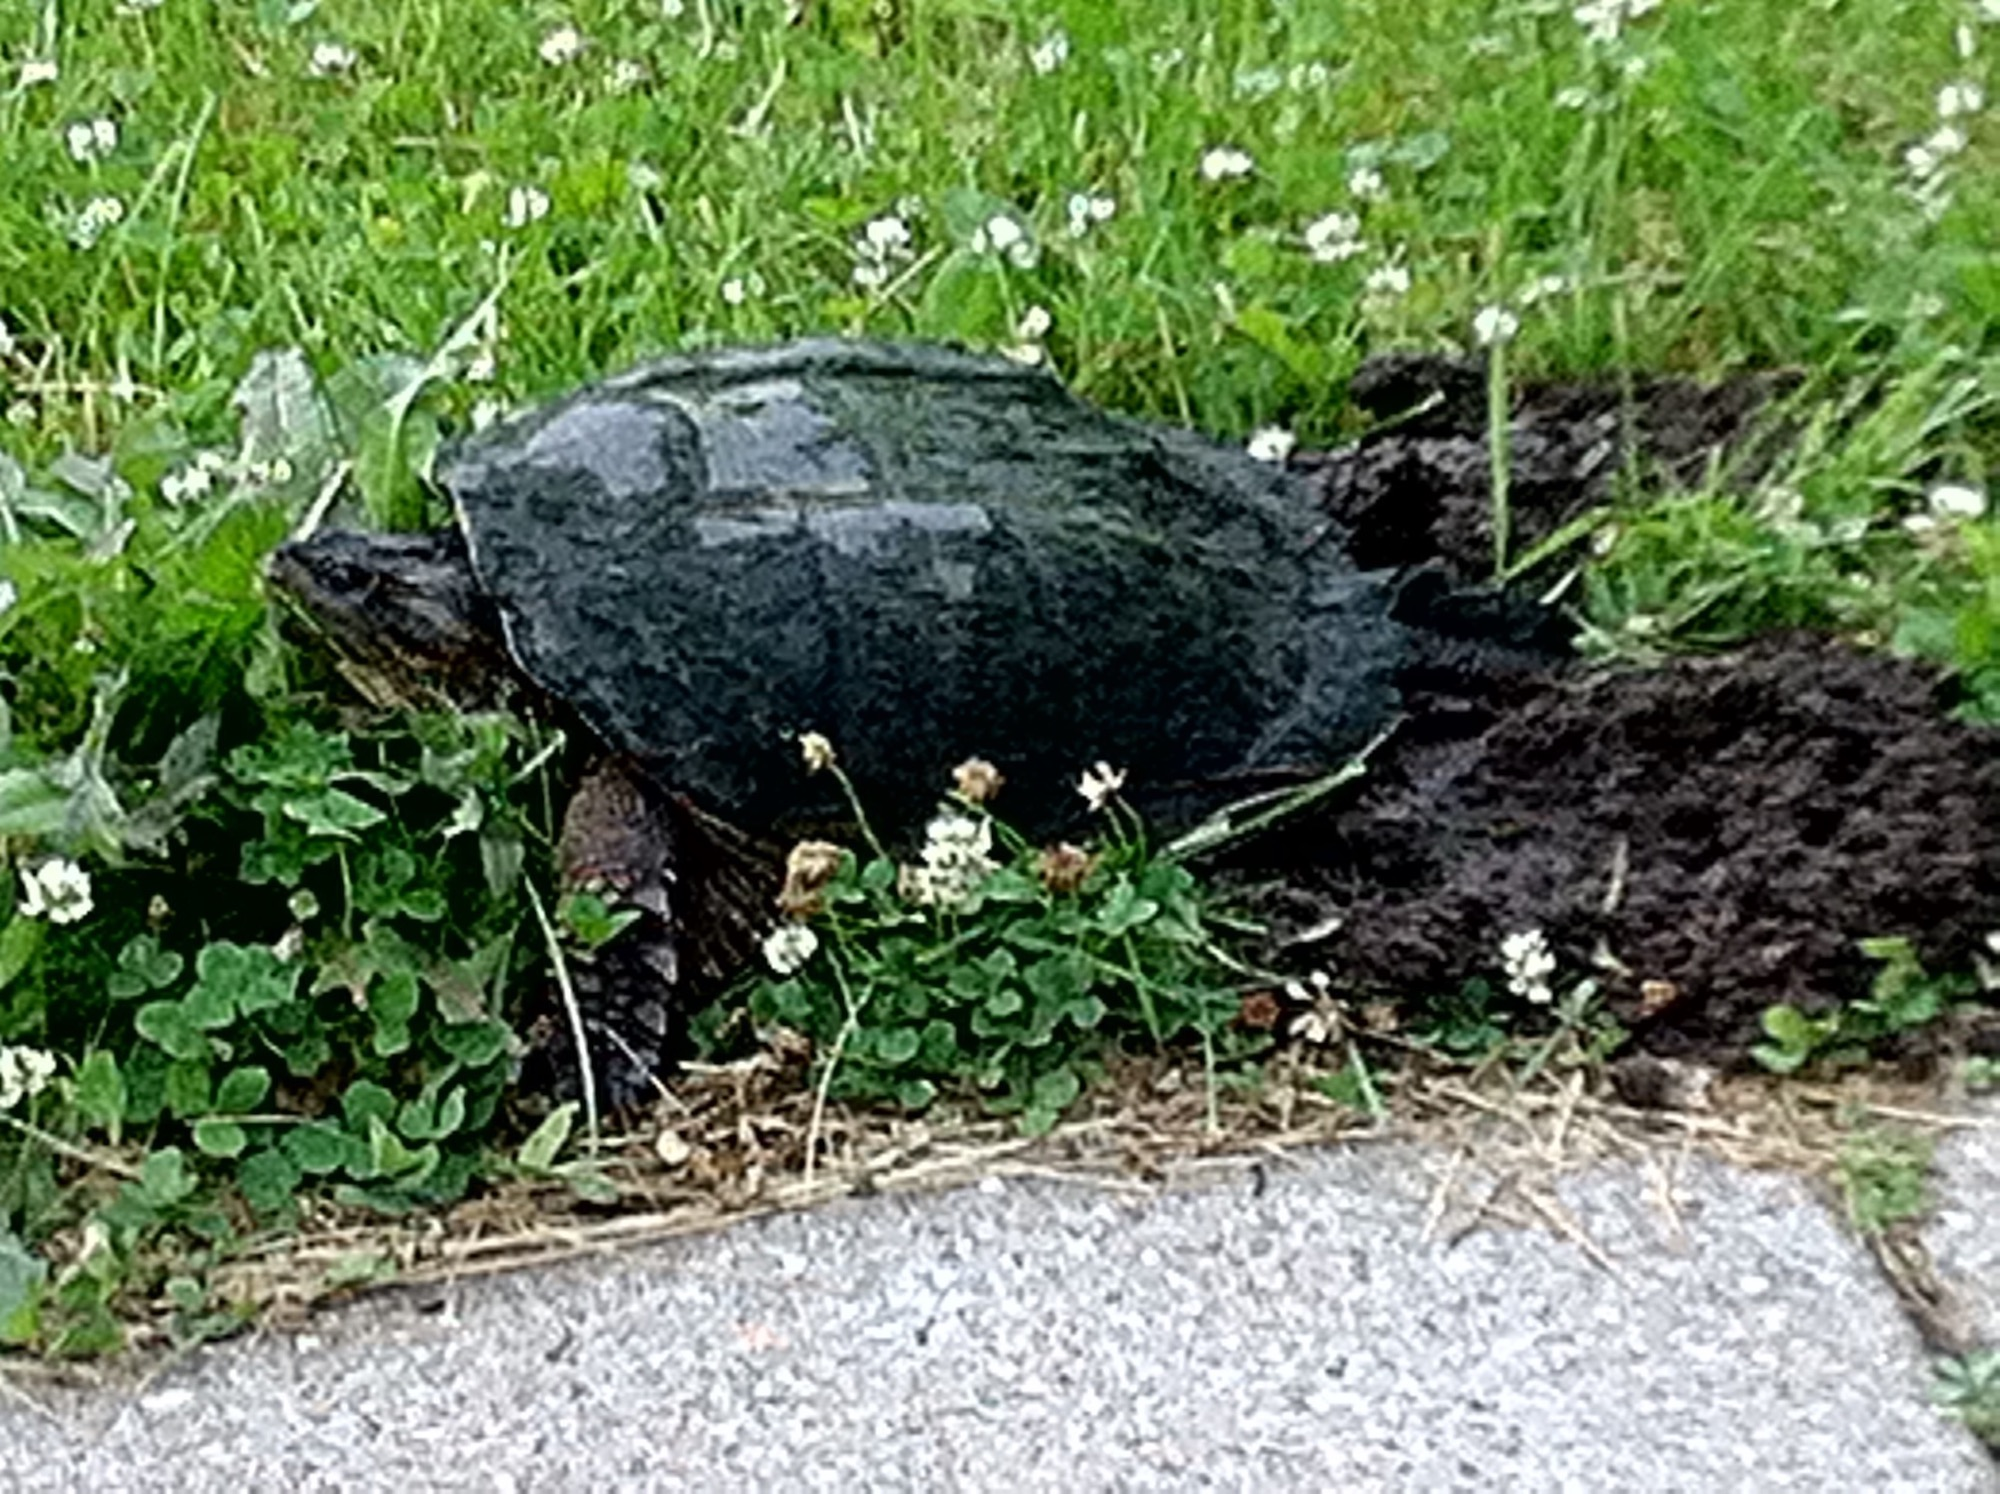 Snapping Turtle laying eggs on Arbor Drive across from  Ho-Nee-Um Pond on Lake Wingra in Madison, Wisconsin on June 14, 2016.